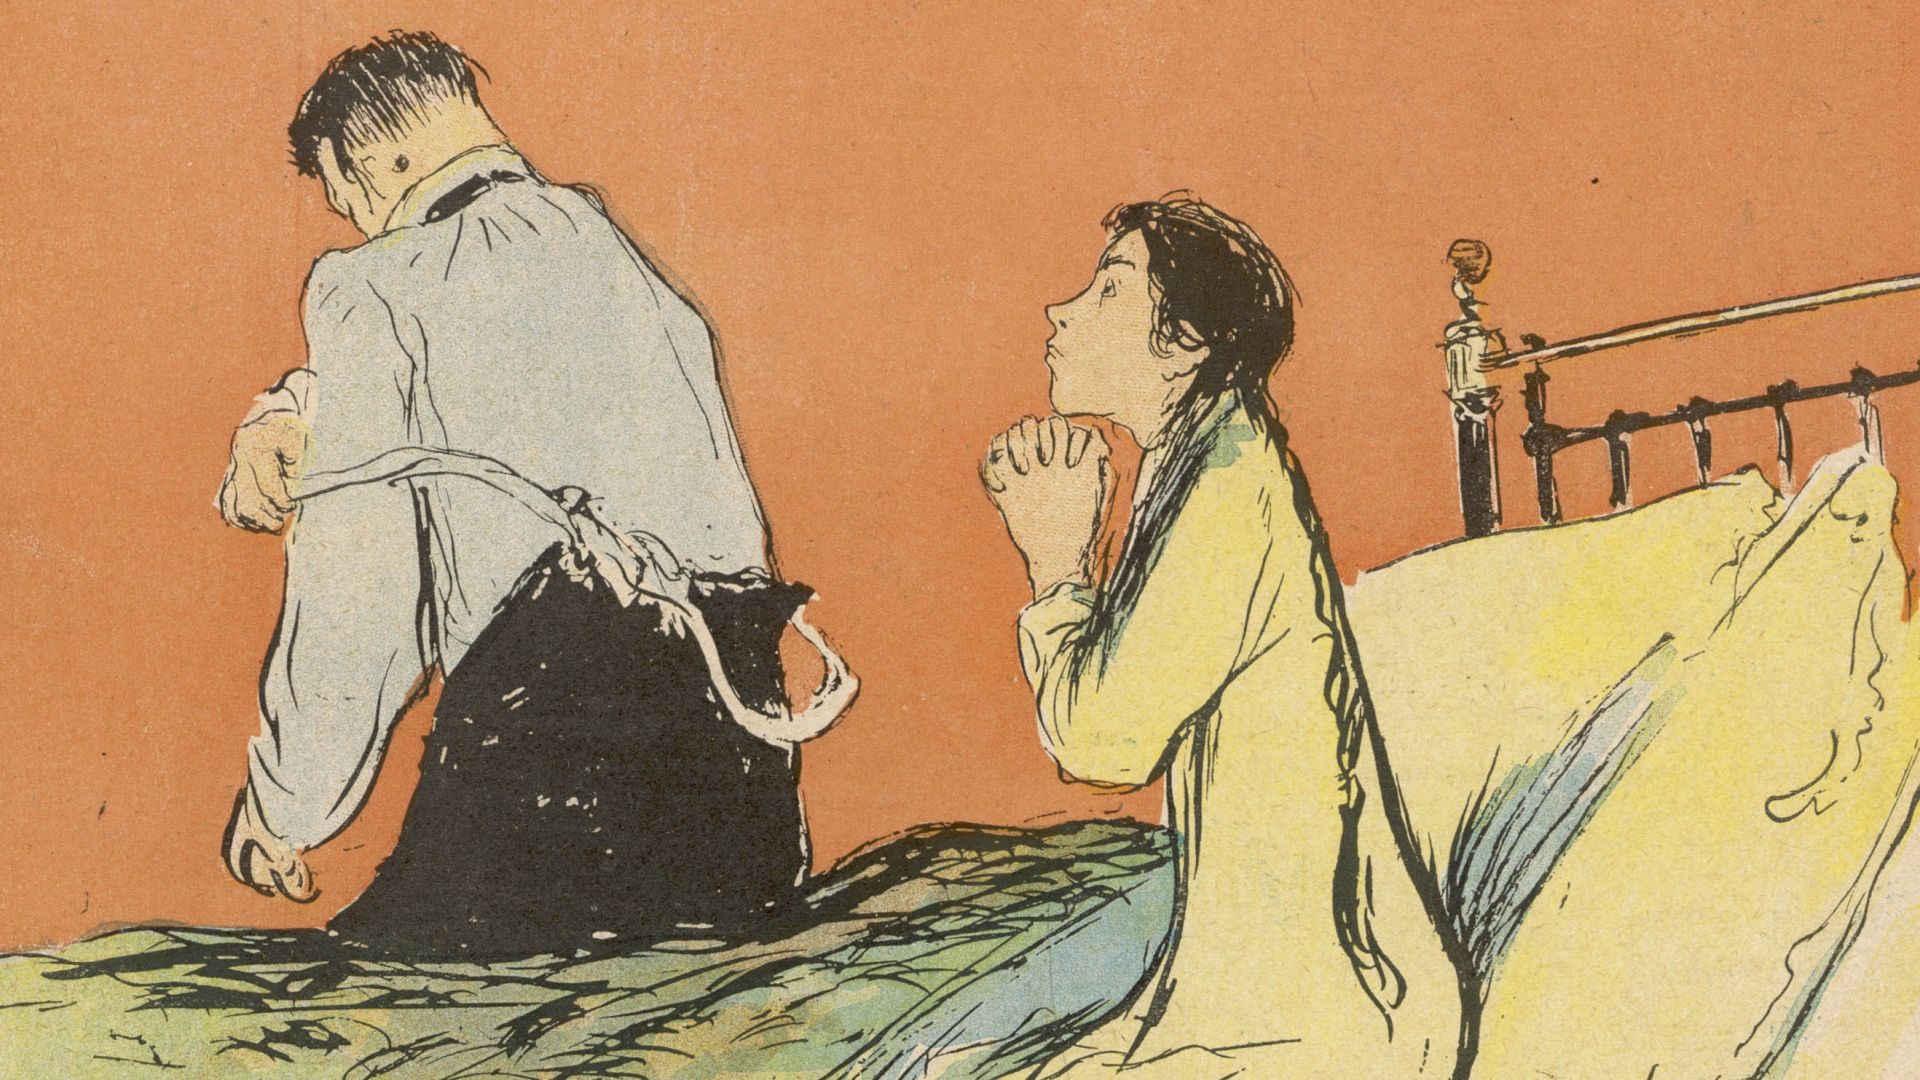 An illustration on the front of the 19th century publication, Le Rire, of a woman praying to be spared of an unwanted pregnancy while her husband gets ready to come to bed. (Credit: Historia/REX/Shutterstock)